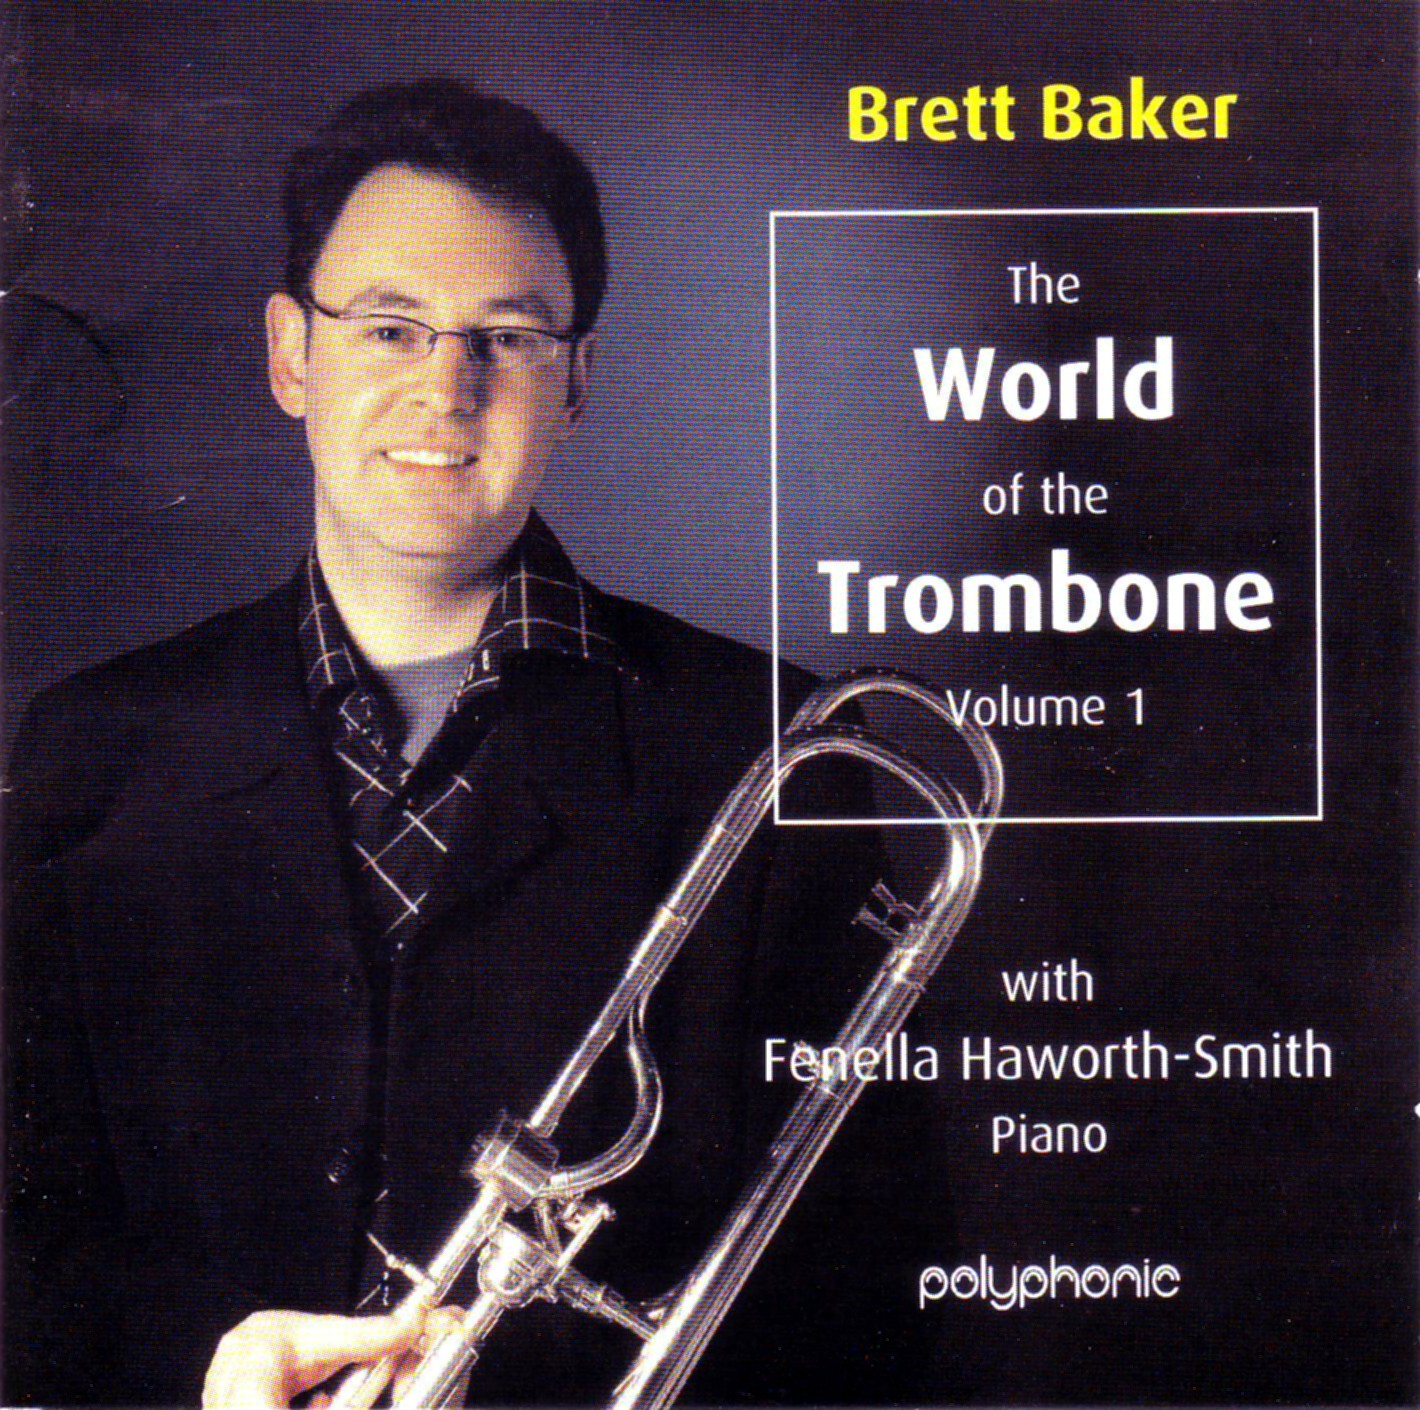 The World of the Trombone